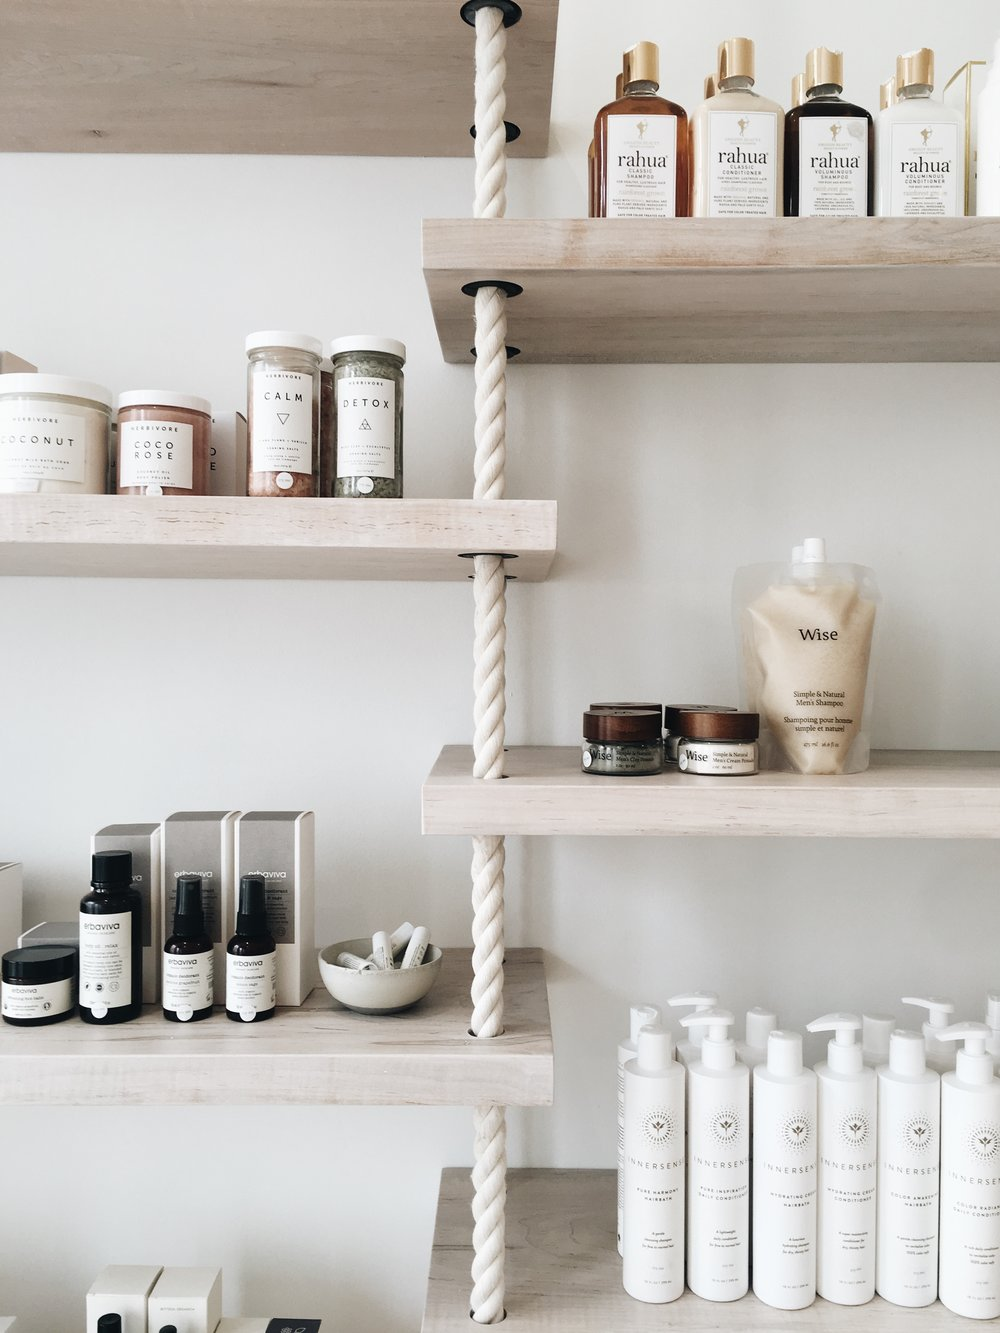 This is a comprehensive list of buying cruelty free beauty products in the UK. No cruelty free brands are included on this list if their parent companies test on animals.